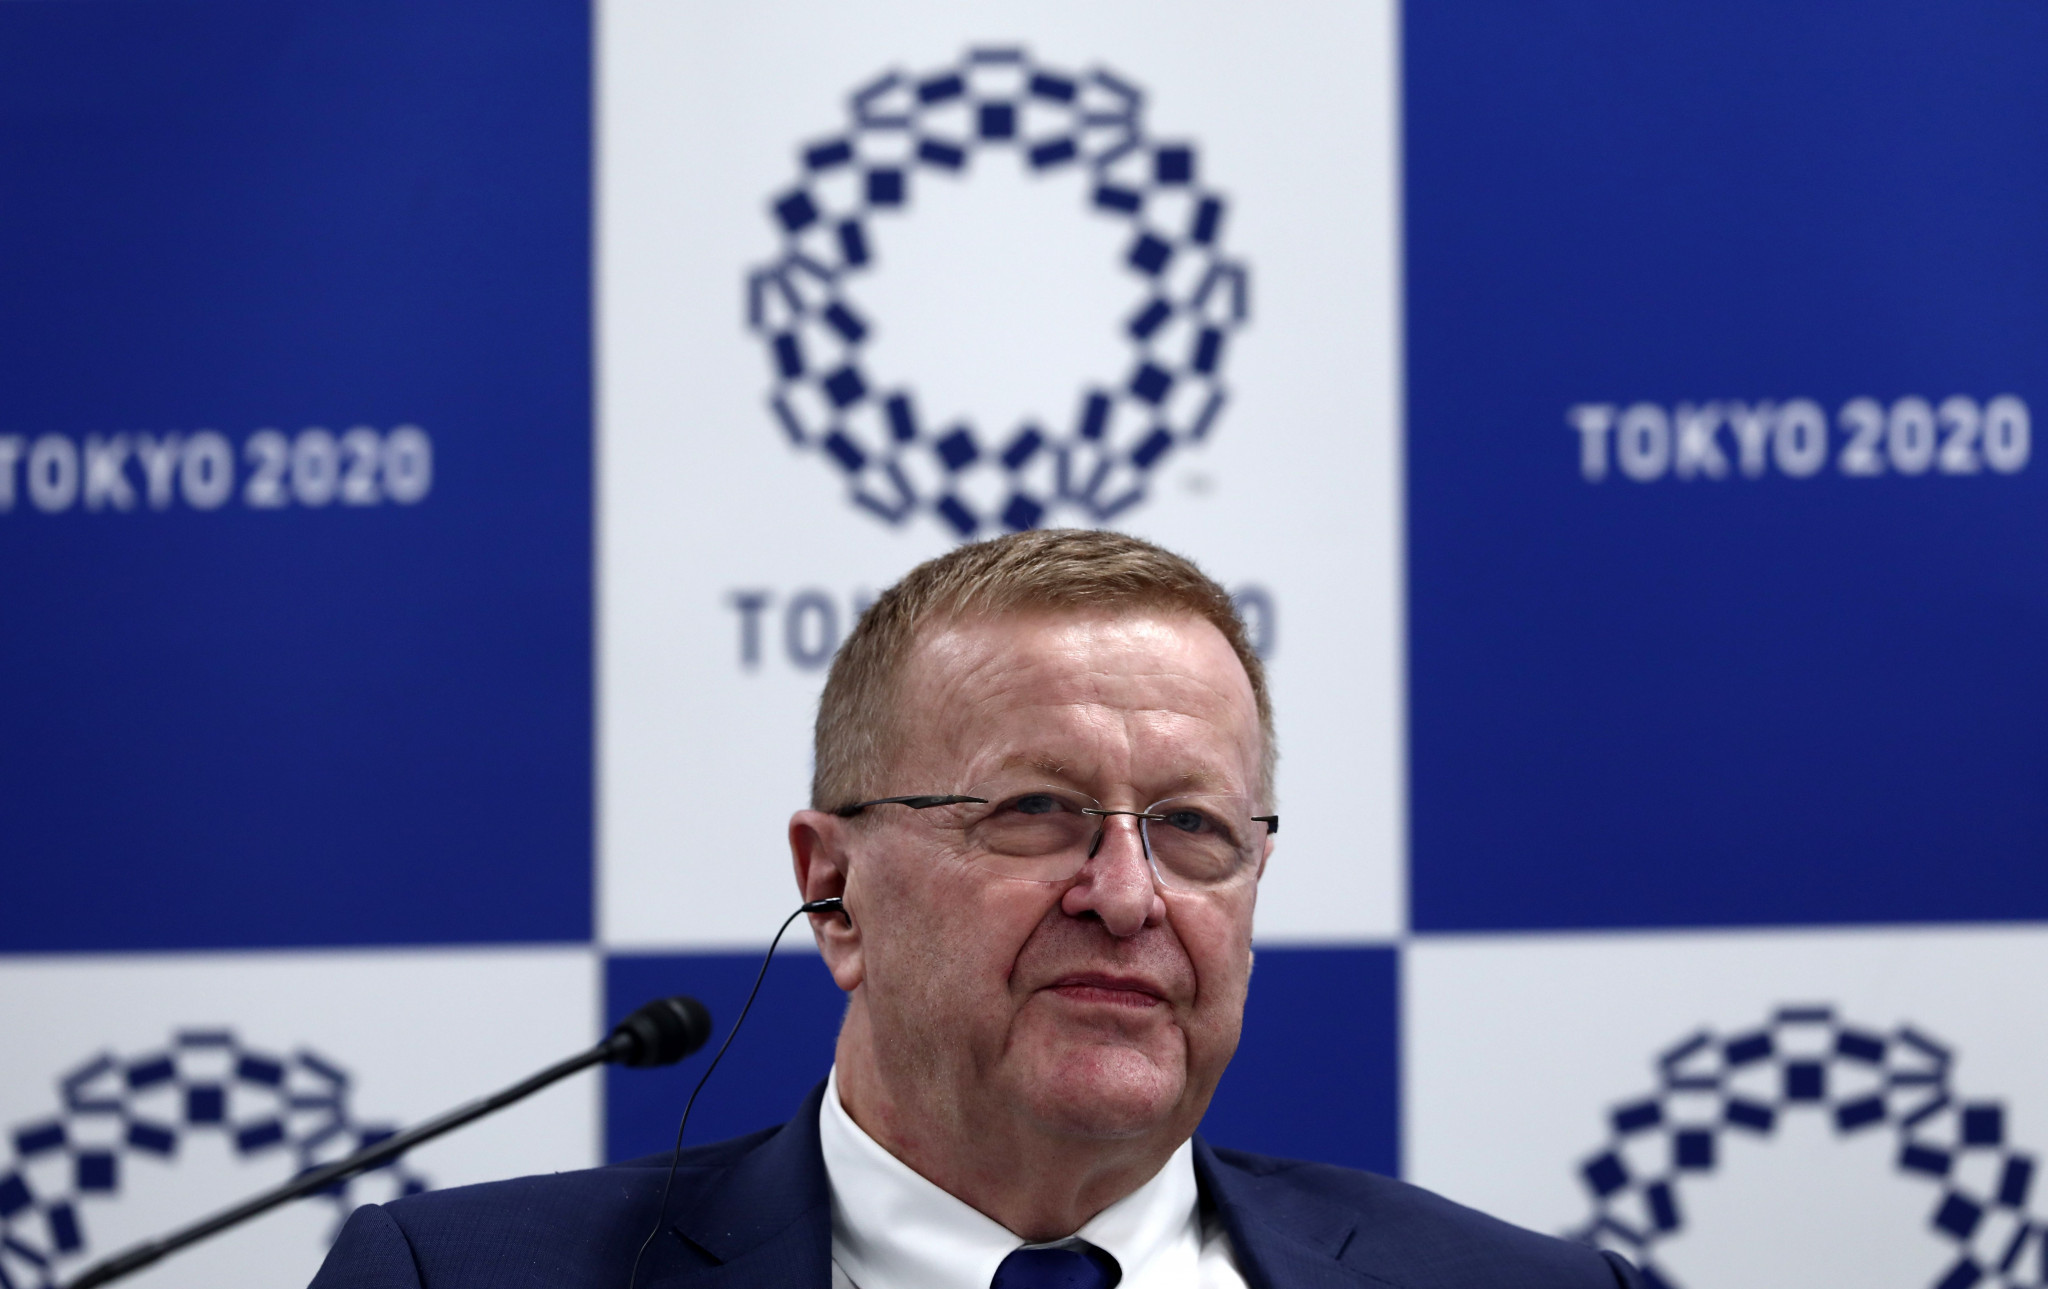 IOC Coordination Commission chair John Coates says companies are already benefiting from the Games ©Getty Images